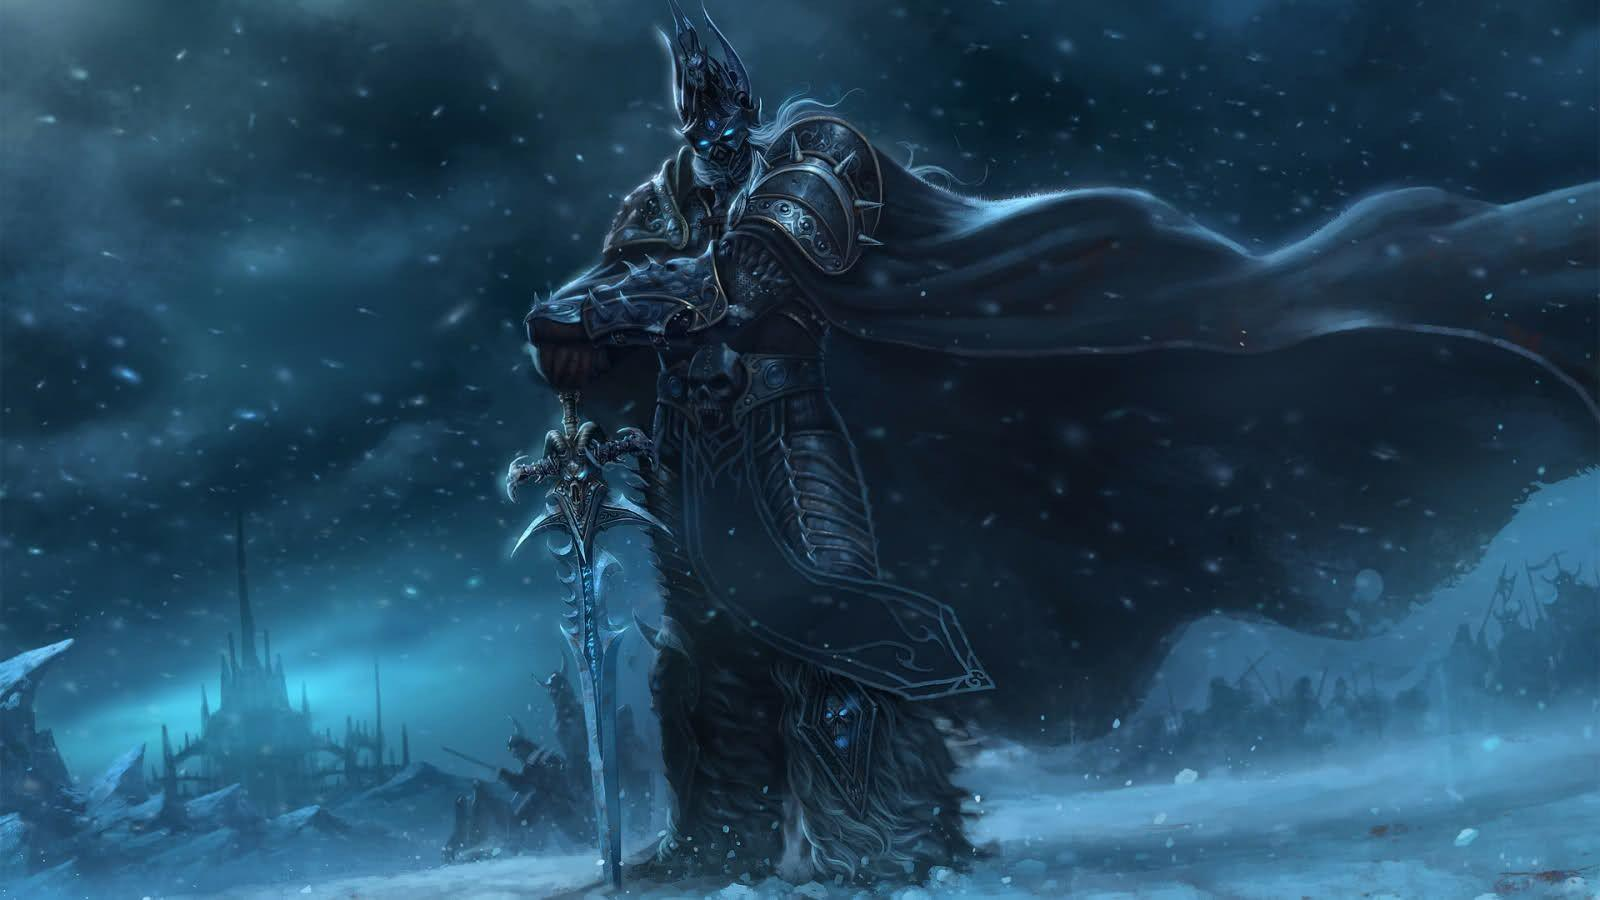 Death Knight Wallpapers